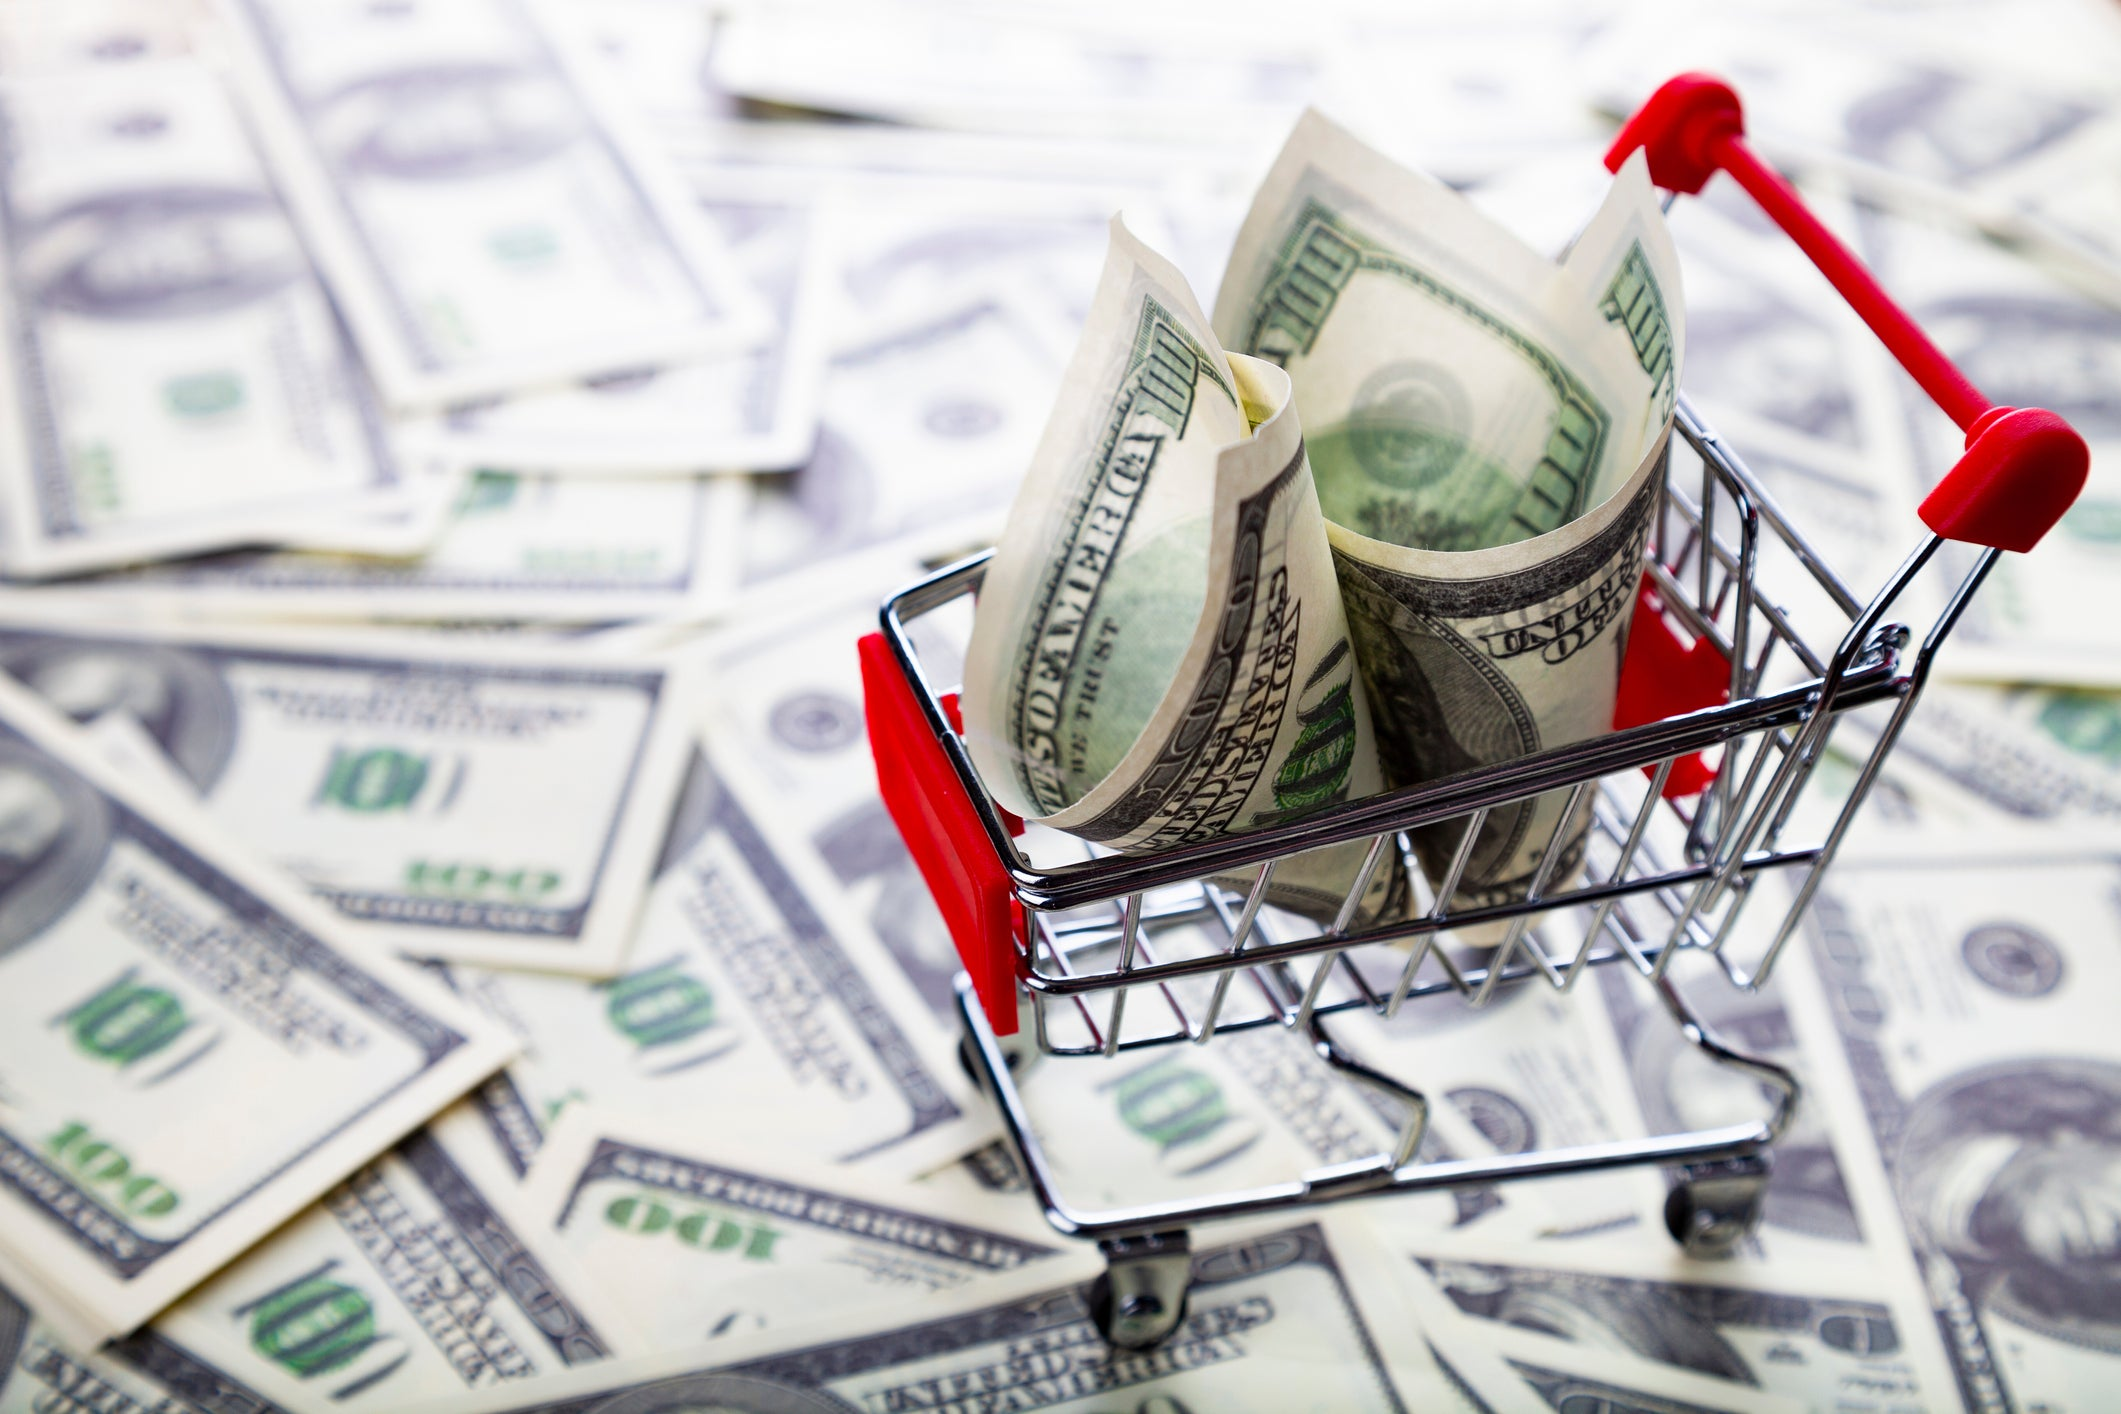 Tiny shopping cart with a $100 bill in it on top of a pile of $100 bills